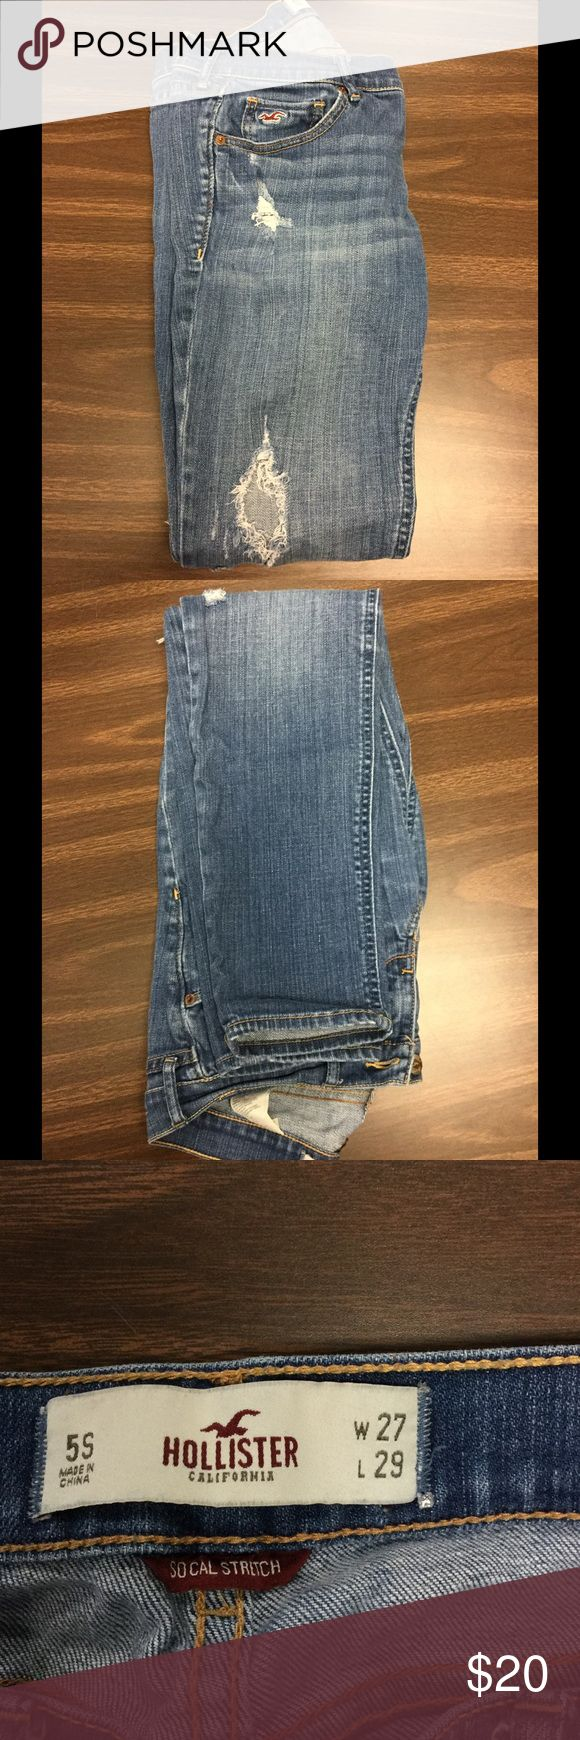 Hollister Skinny Jeans Oceanside Super Skinny cut jeans from Hollister. Size 5s and measurements as shown. Cannot be modeled but measurements can be provided upon further interest. All garments come from a smoke-free home and have no flaws unless stated above. Feel free to ask any questions or make offers! Hollister Jeans Skinny